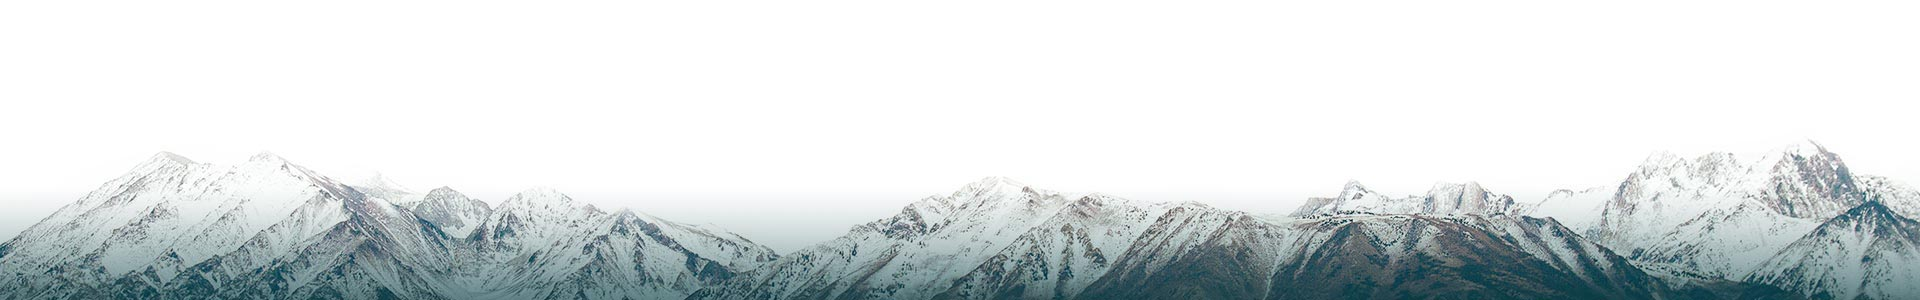 mountain-footer-bg-with-gradient